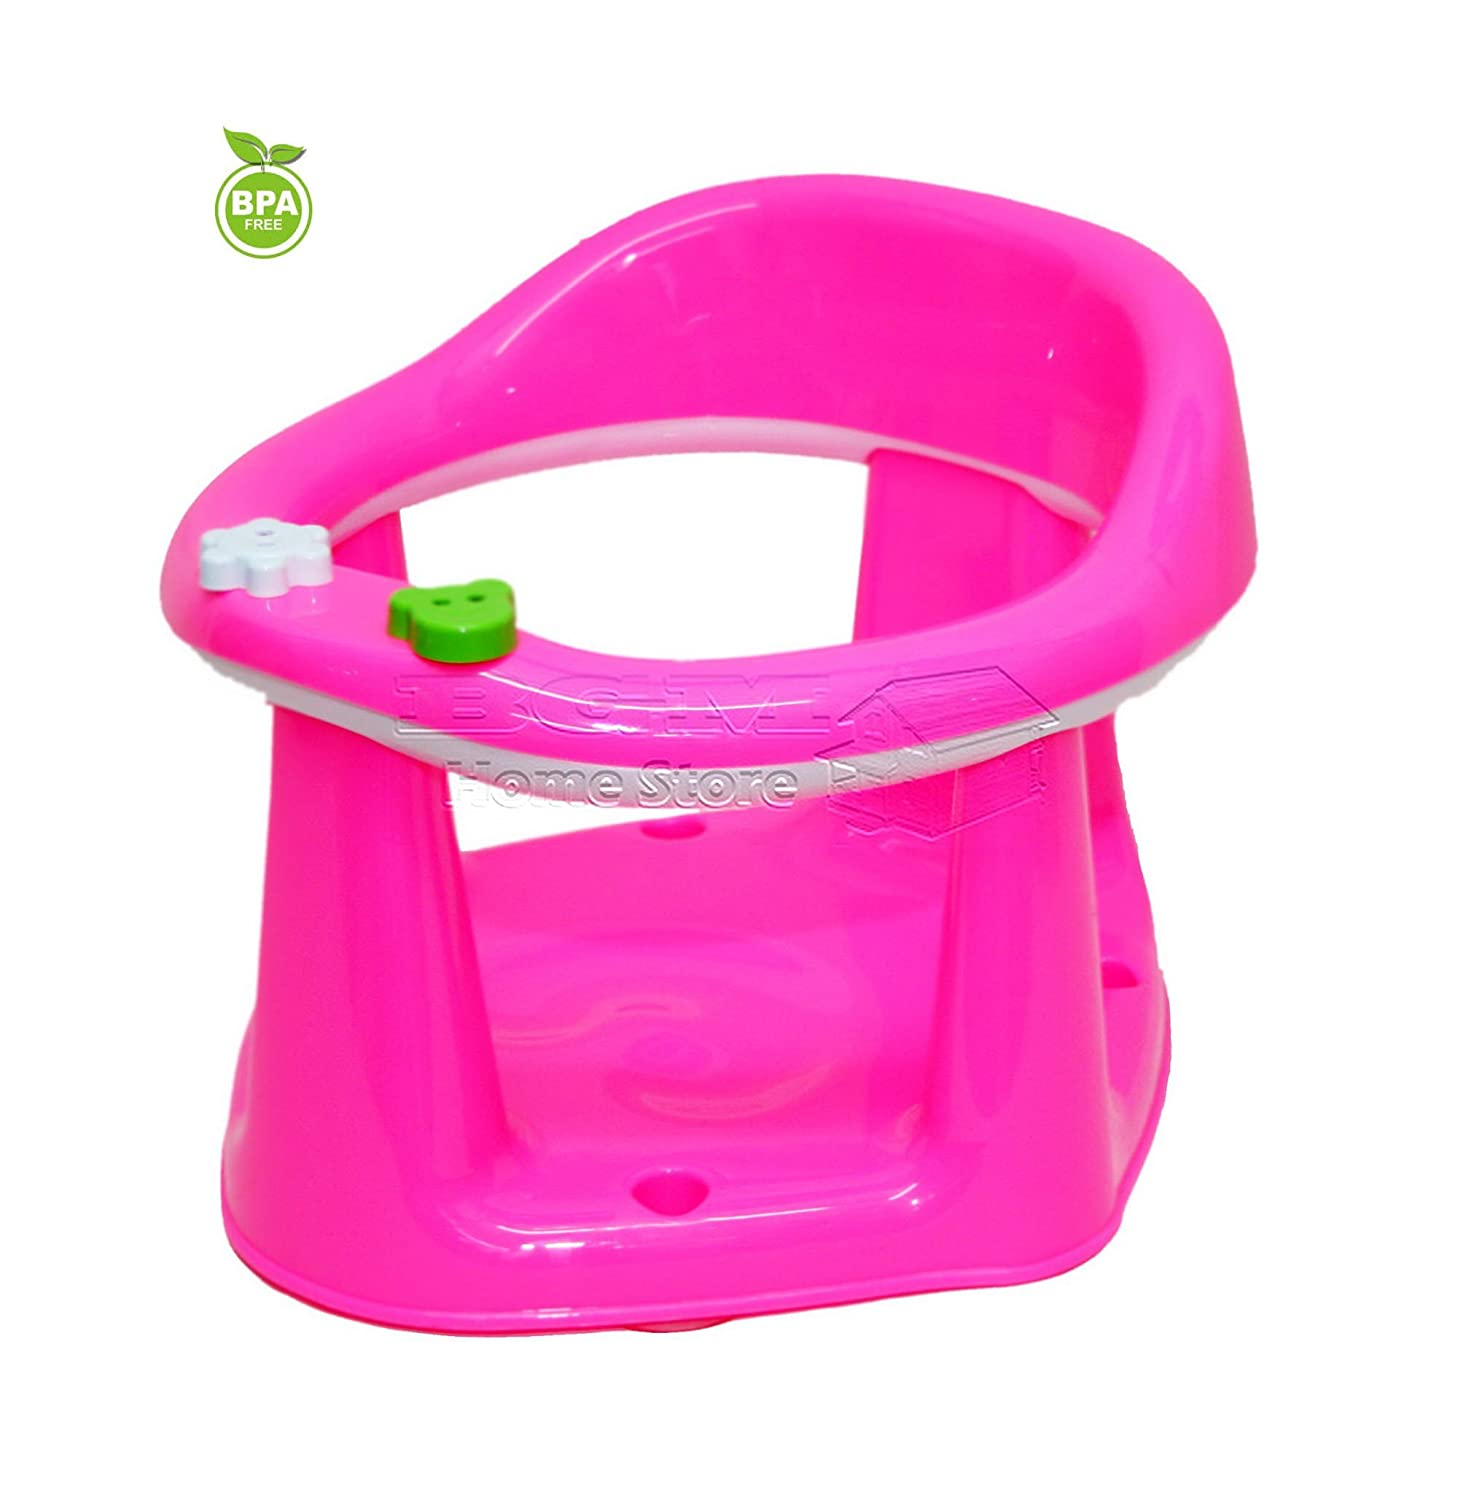 Baby Toddler Child Bath Support Seat BPA FREE Safety Bathing Safe Dinning Play 3 In 1 PINK MWR (PINK) dunya Plastik